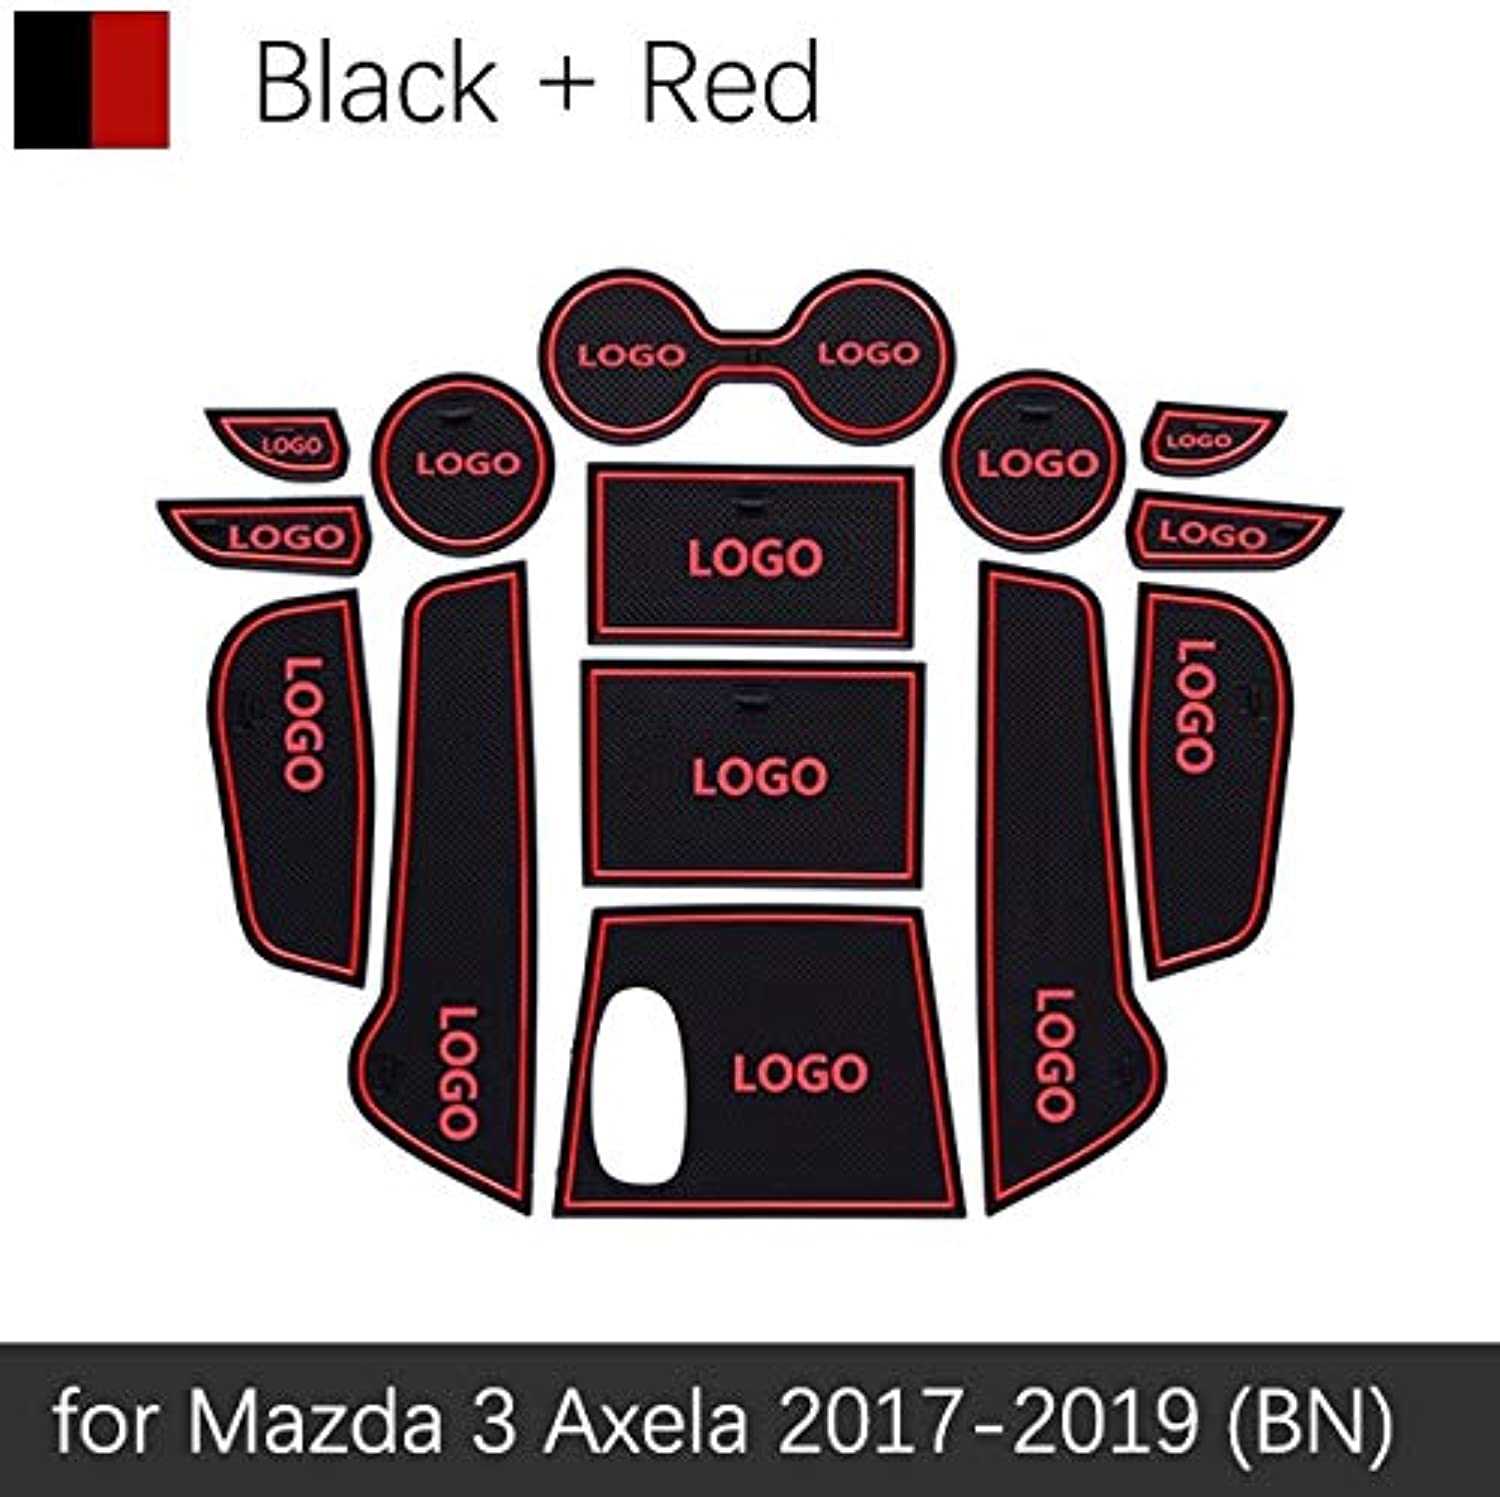 AntiSlip Gate Slot Mat Rubber Coaster for Mazda 3 BN Axela 2017 2018 2019 Facelift Mazda3 MK3 Accessories Car Stickers 14Pcs  (color Name  Red)